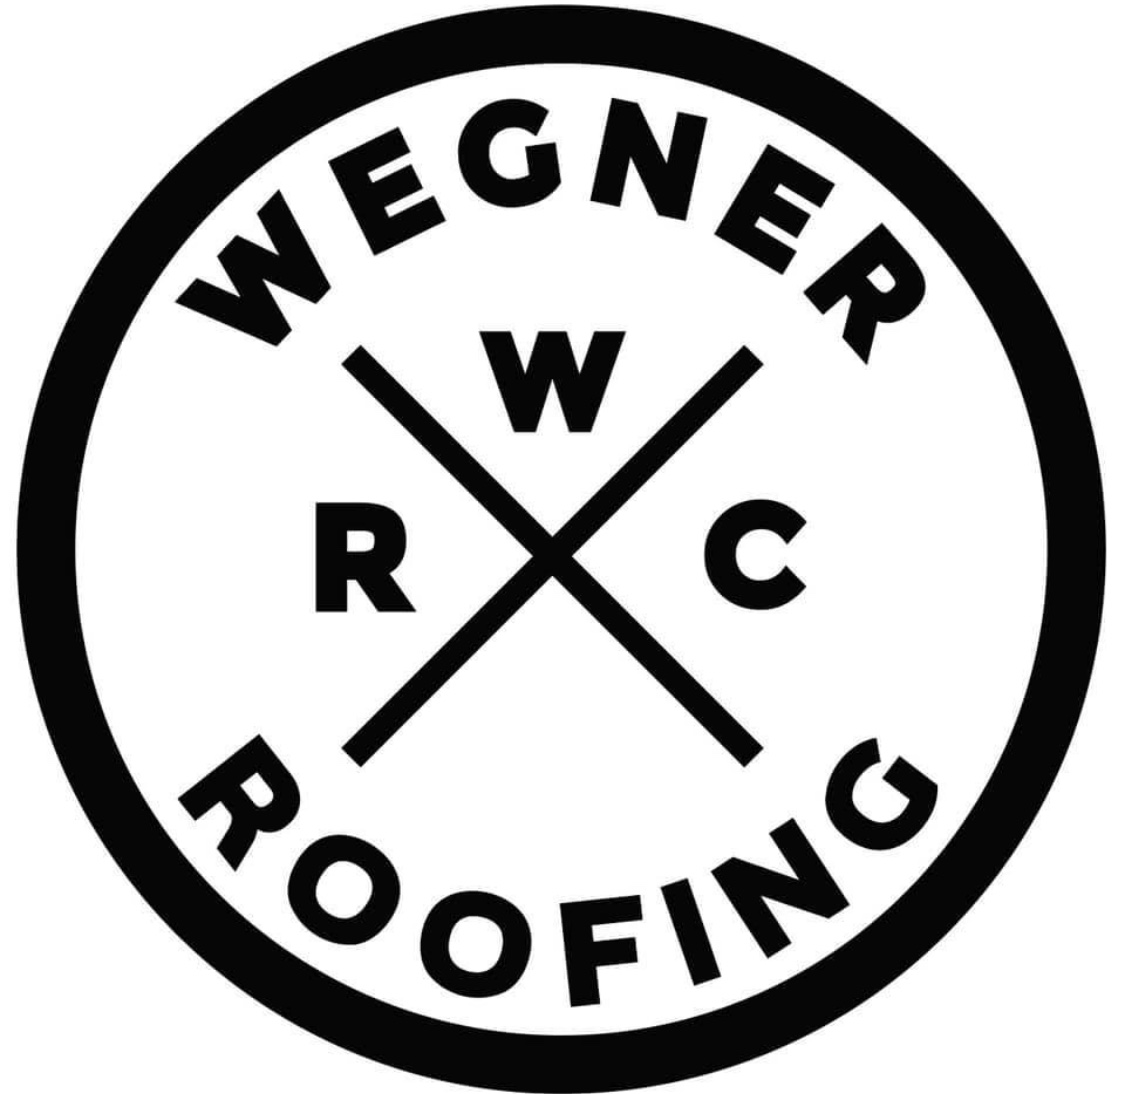 Wegner Roofing and Construction